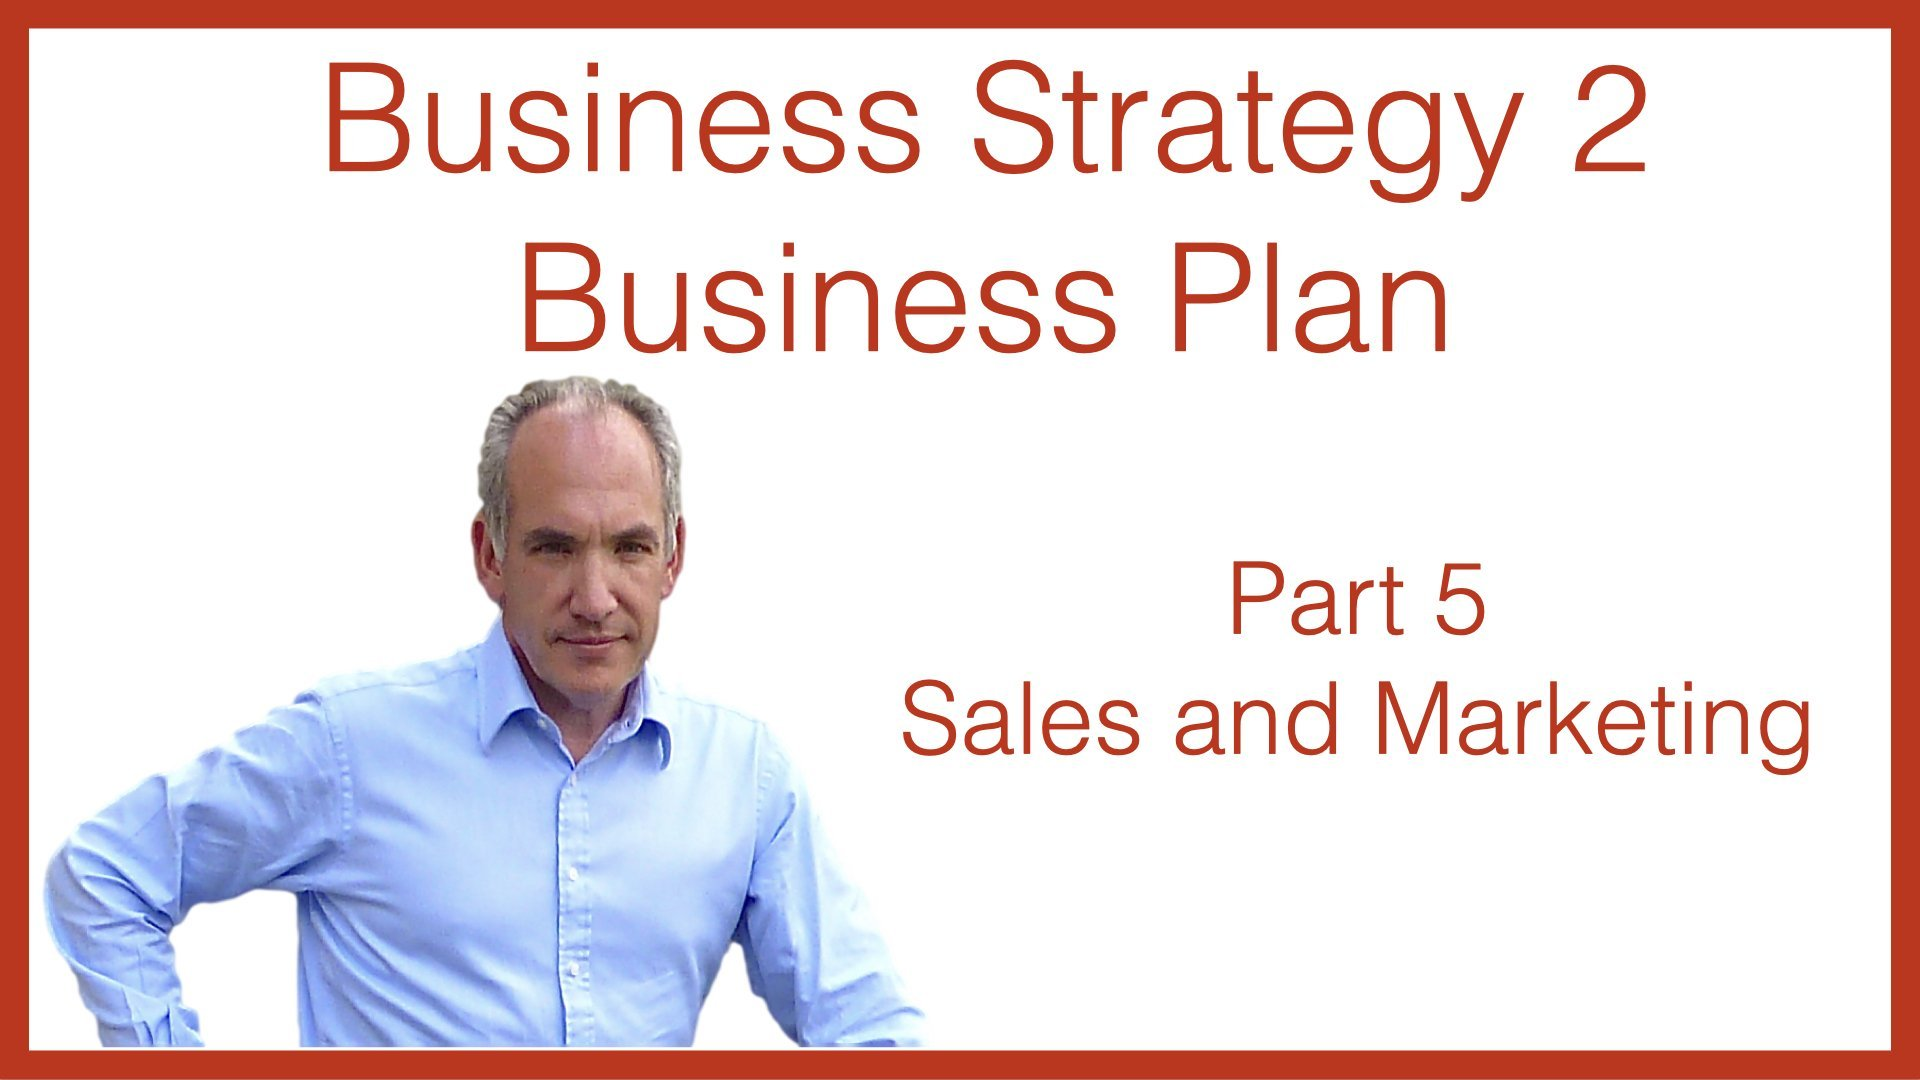 Business Strategy 2 Business Plan Part 5 Sales and Marketing